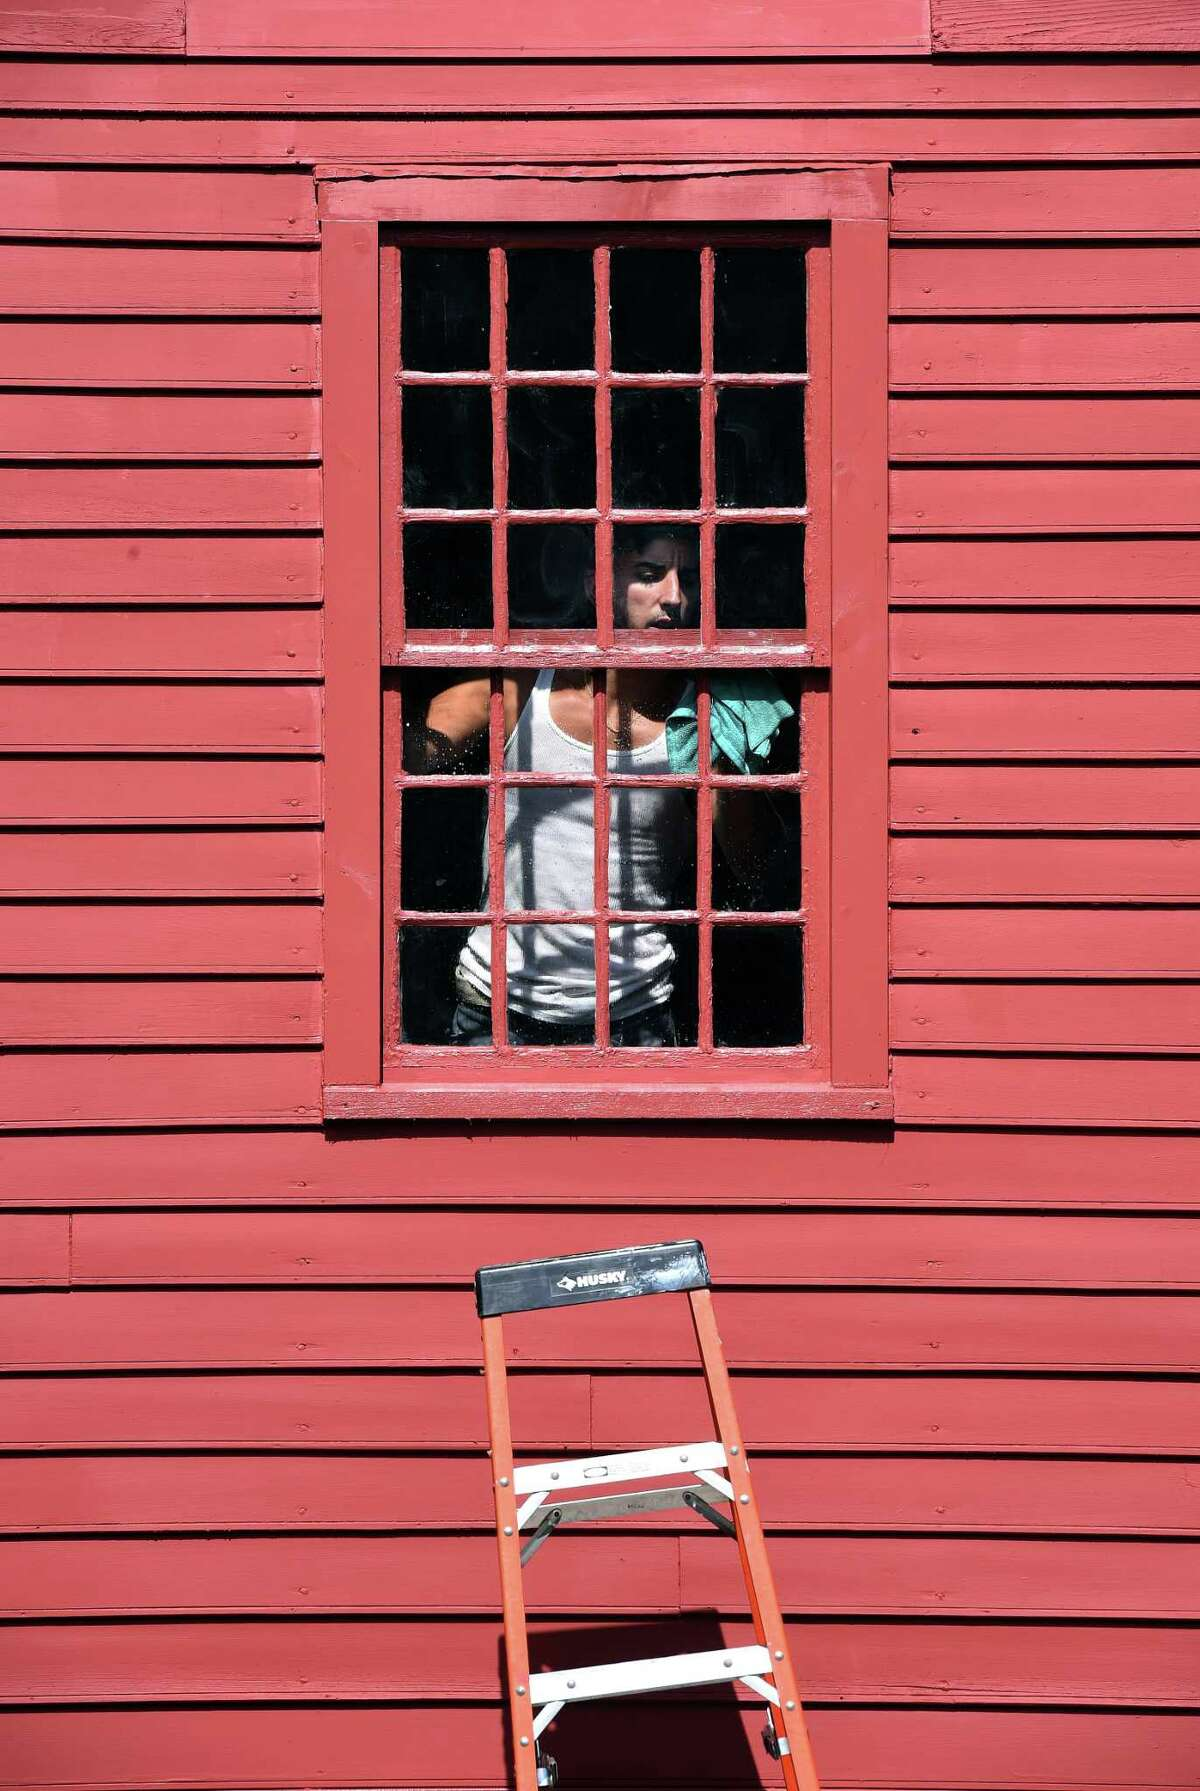 Robert Skehan of K&R Remodeling & Home Improvement cleans a rebuilt window on the Bryan-Downs House at the Milford Historical Society on August 31, 2018. The company rebuilt windows and doors, replaced trim and siding on the bottom half of the house, power washed the roof and painted the entire historic house.